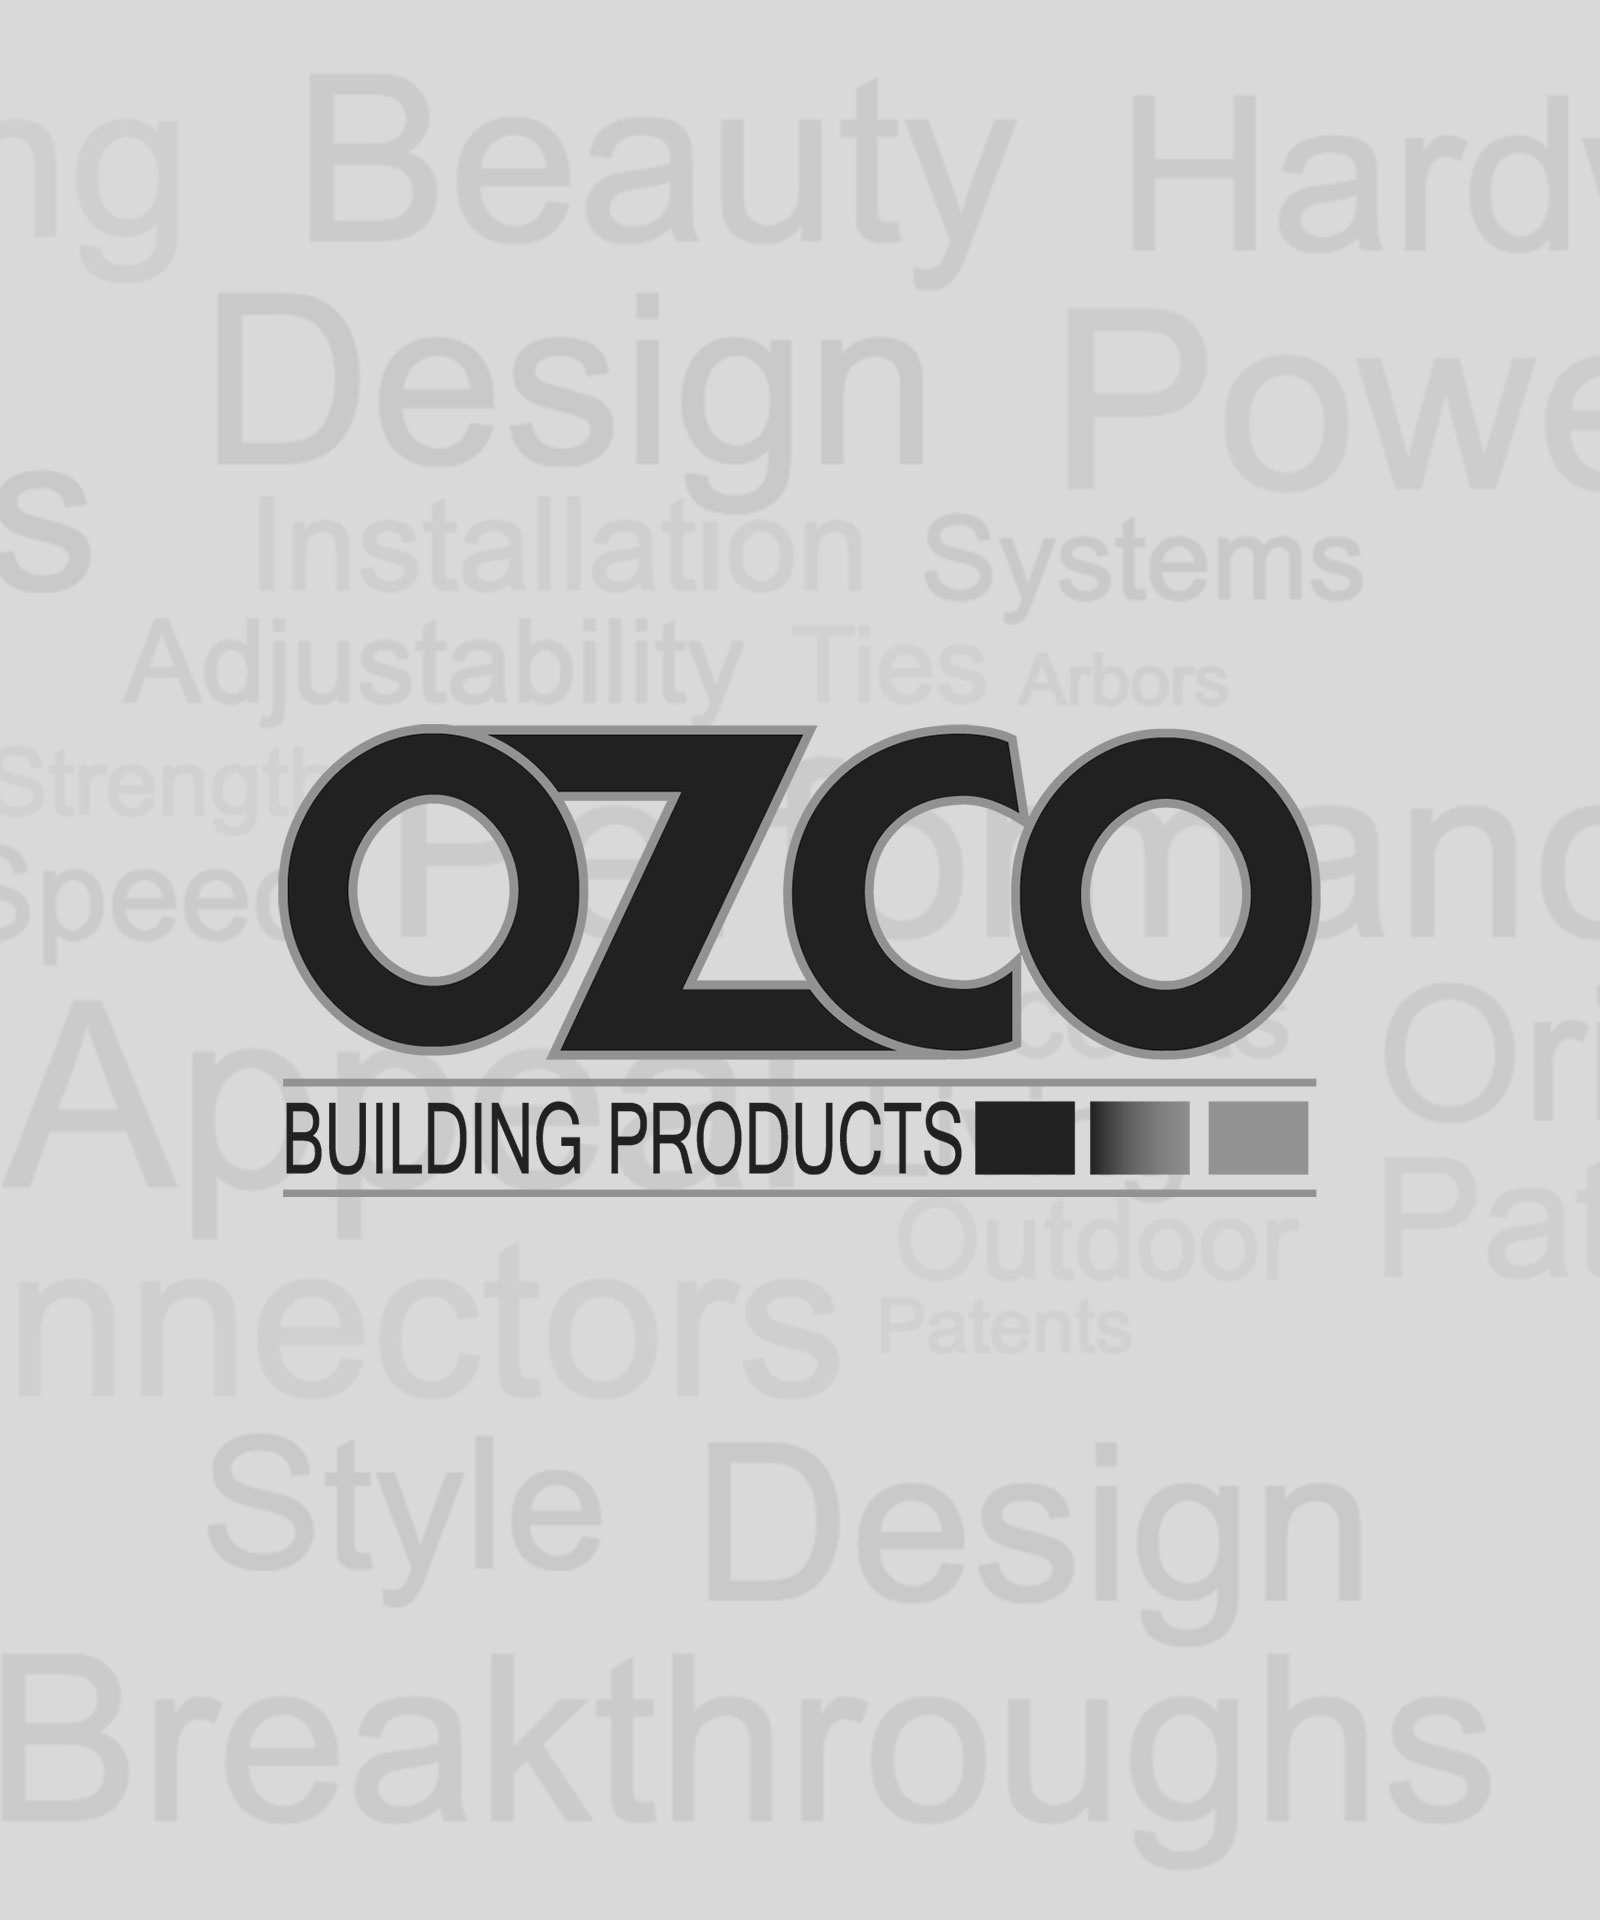 Our Work – OZCO Building Products